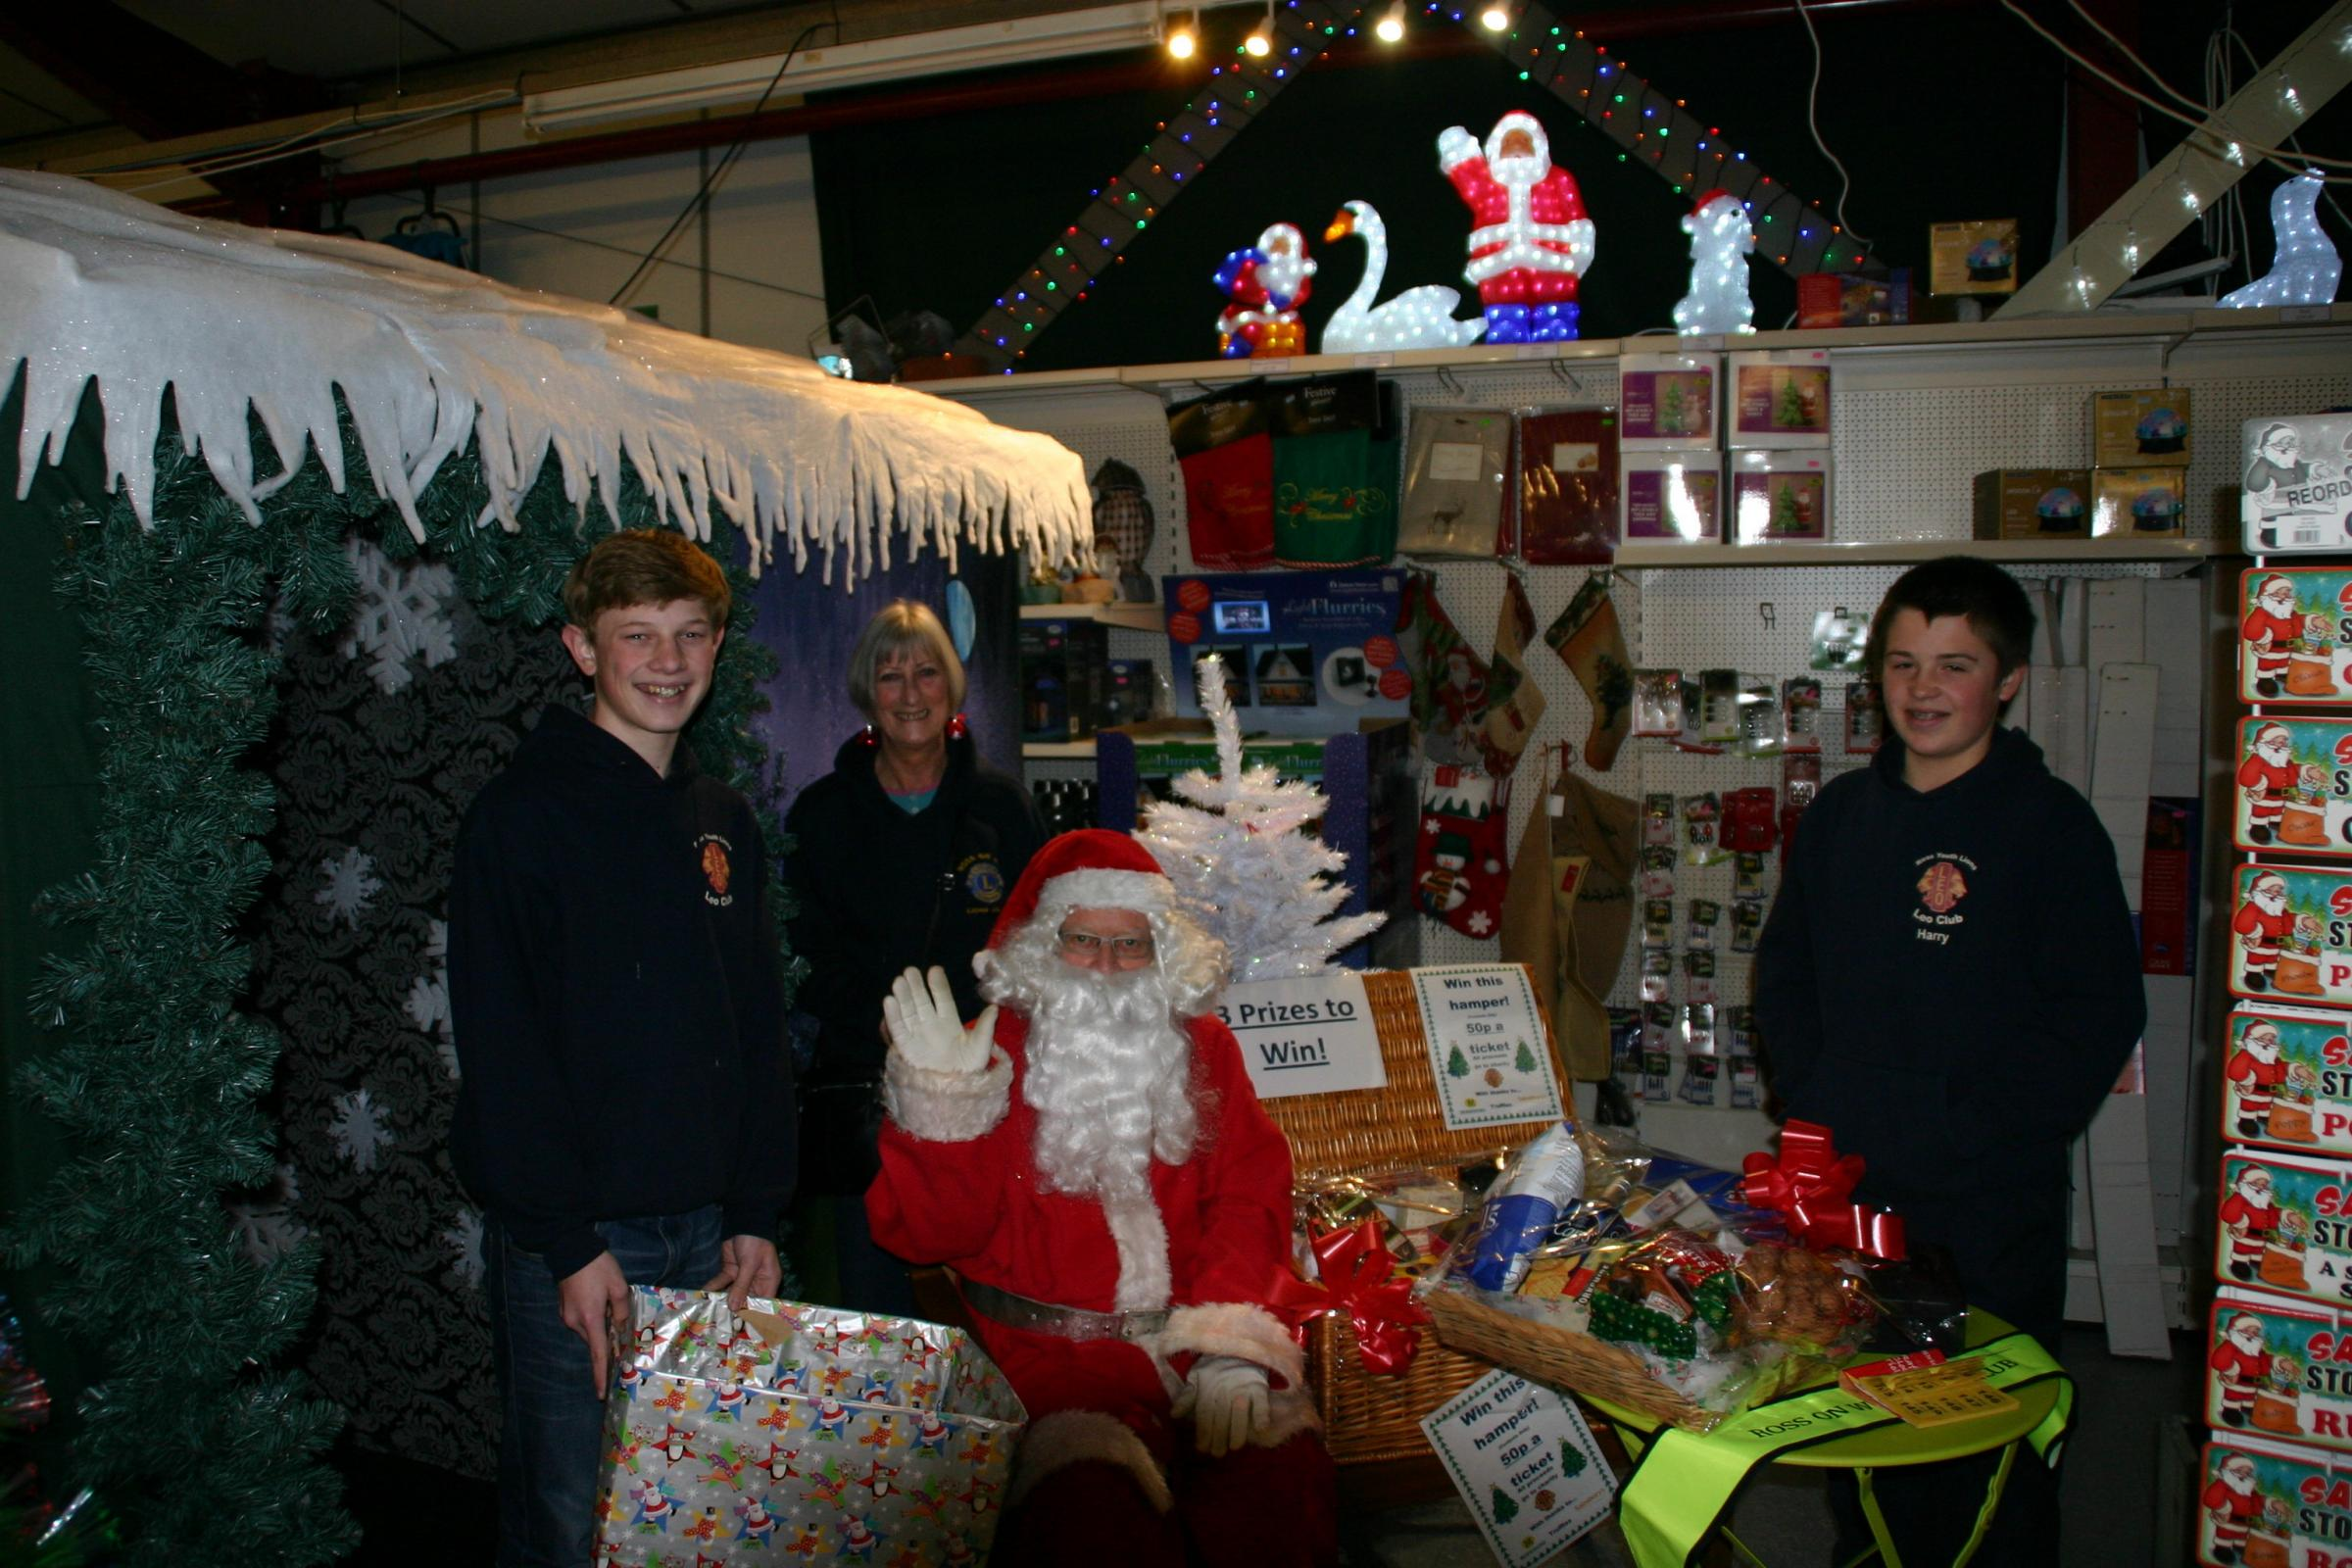 From left: Adam Middlecote, Jenny Symington, Father Christmas and Harry Davies